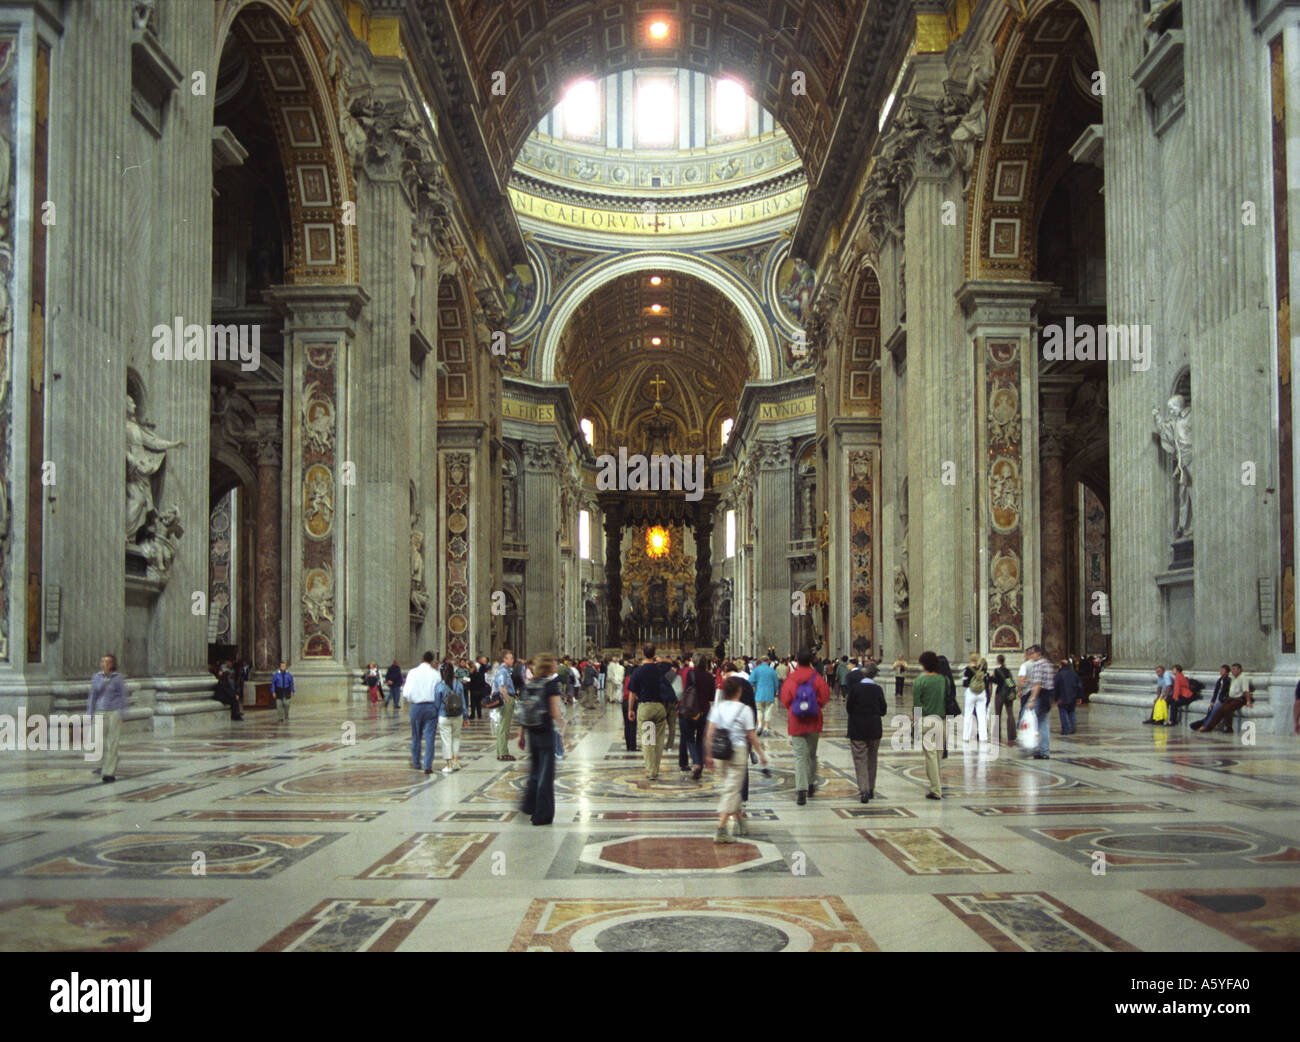 Inside the magnificent Saint Peter s Basilica in the Vatican City in Rome - Stock Image